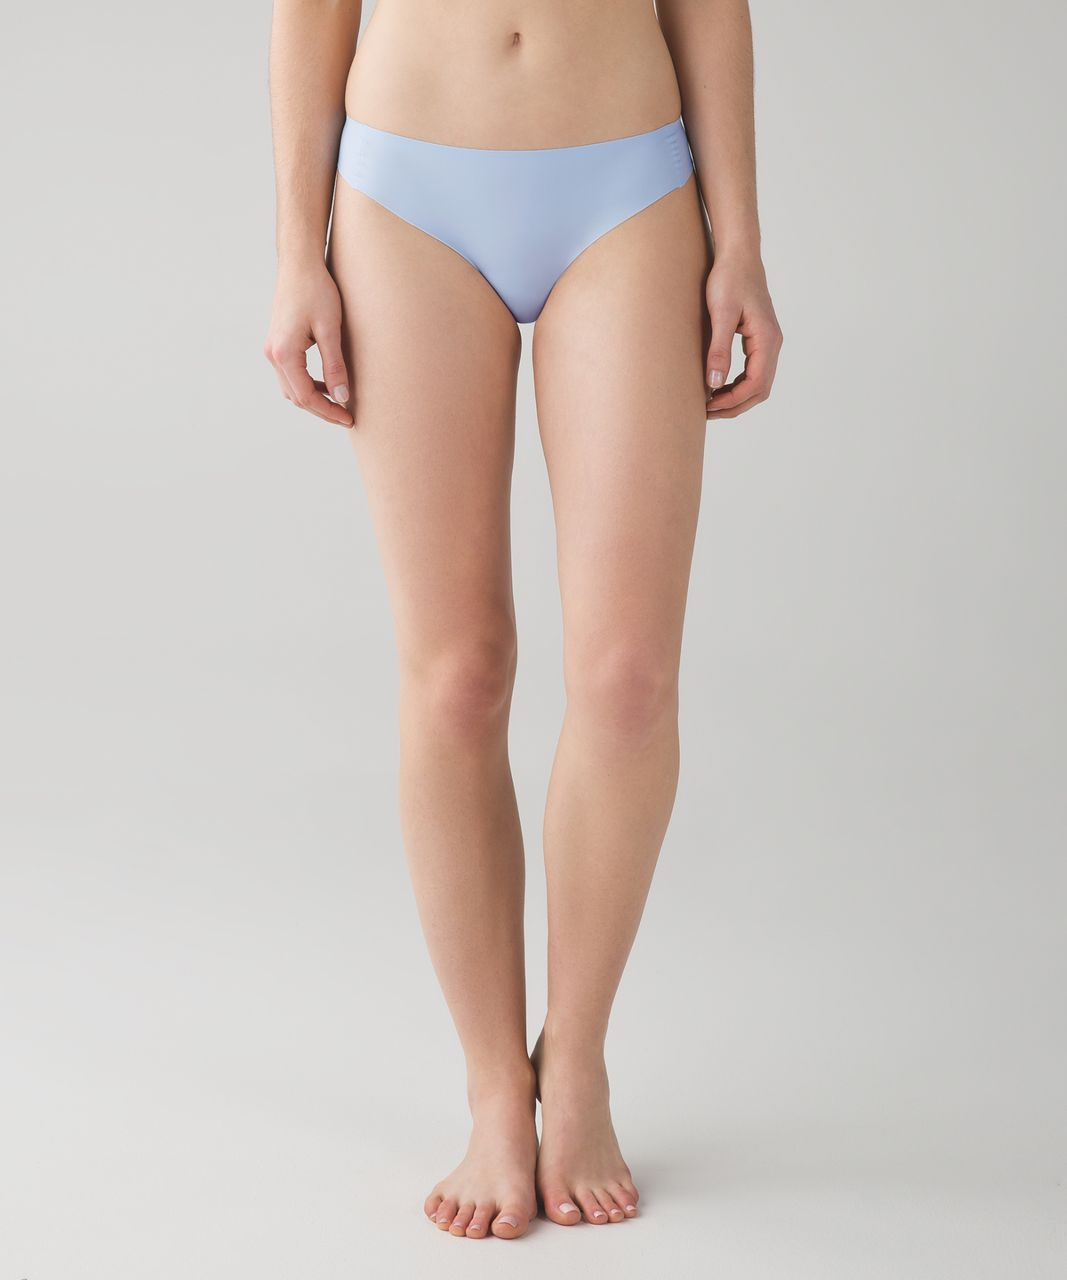 Lululemon Namastay Put Thong - Chalk